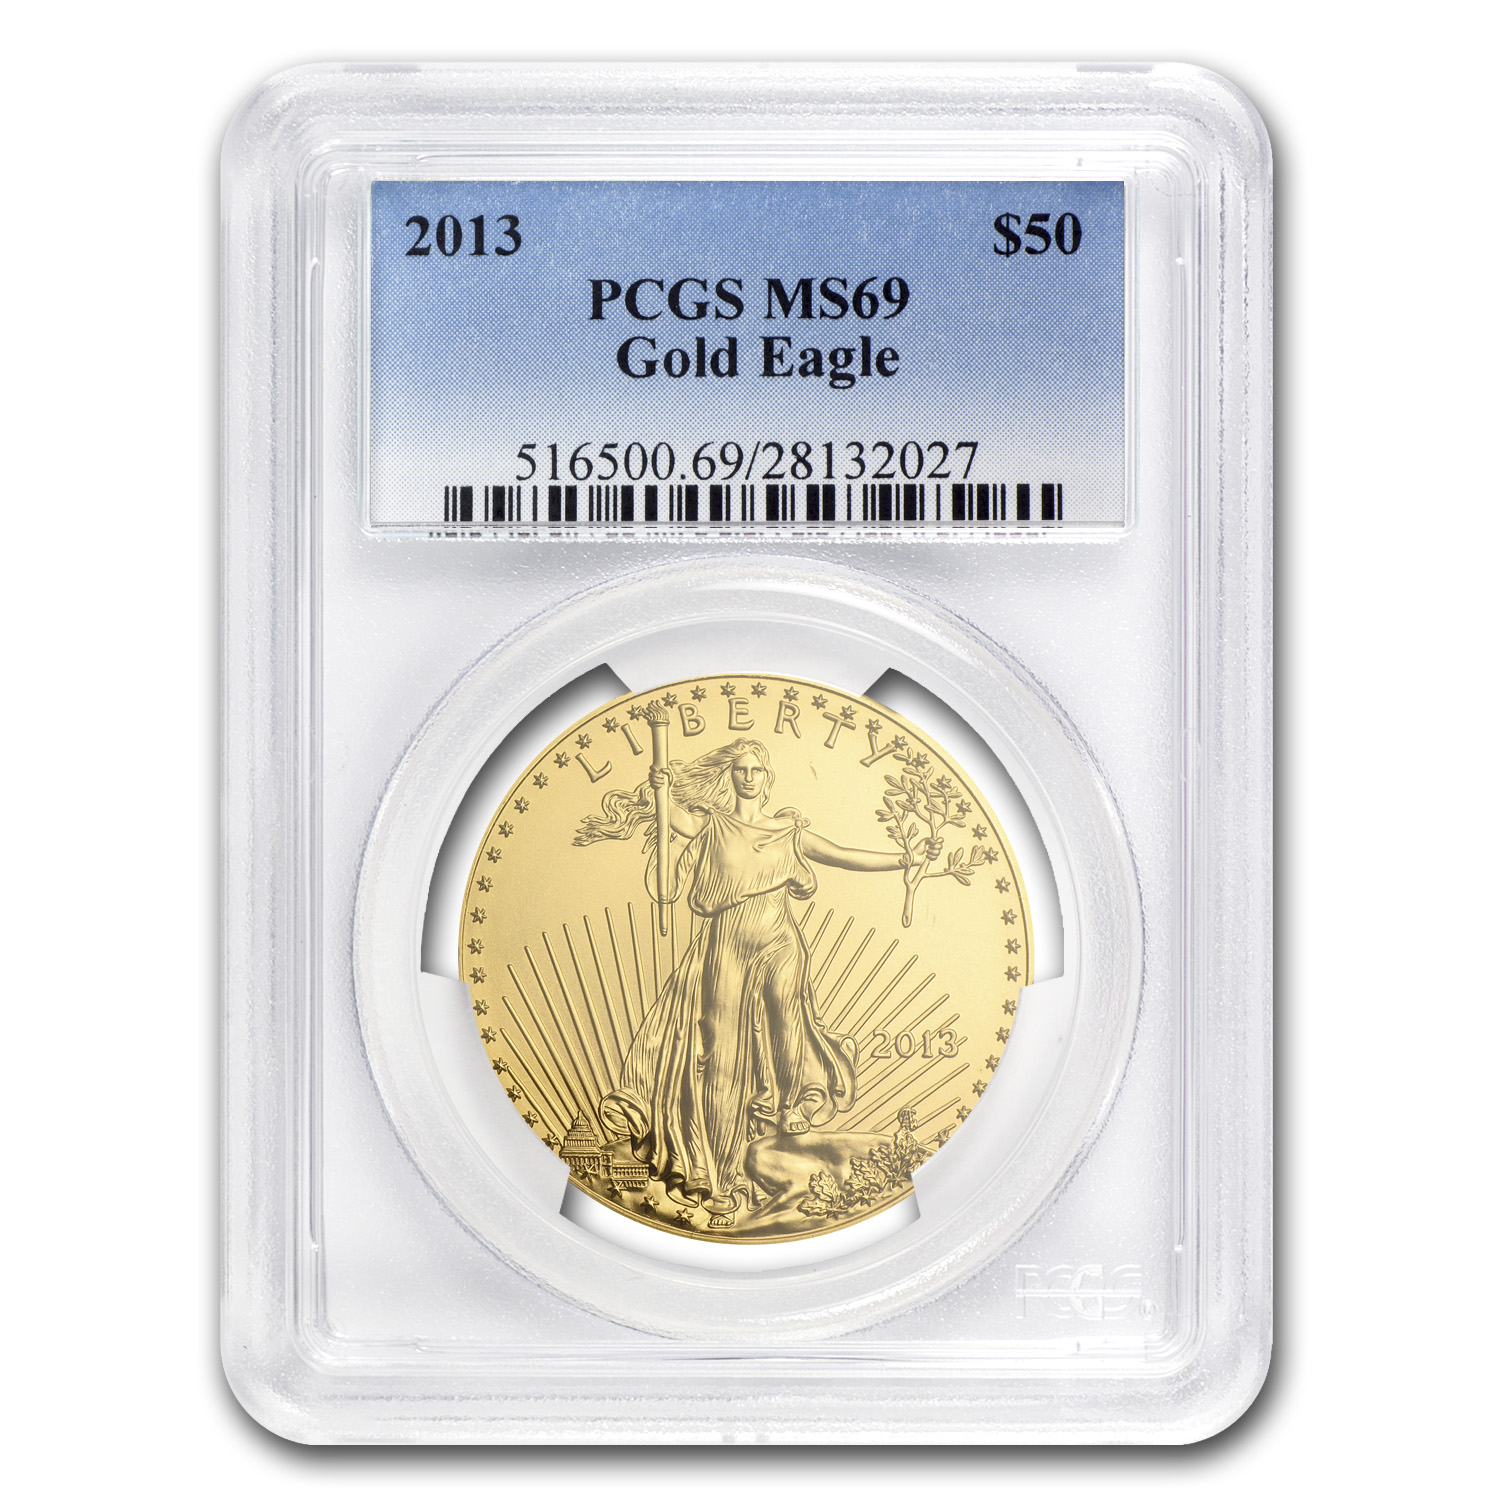 2013 1 oz Gold American Eagle MS-69 PCGS